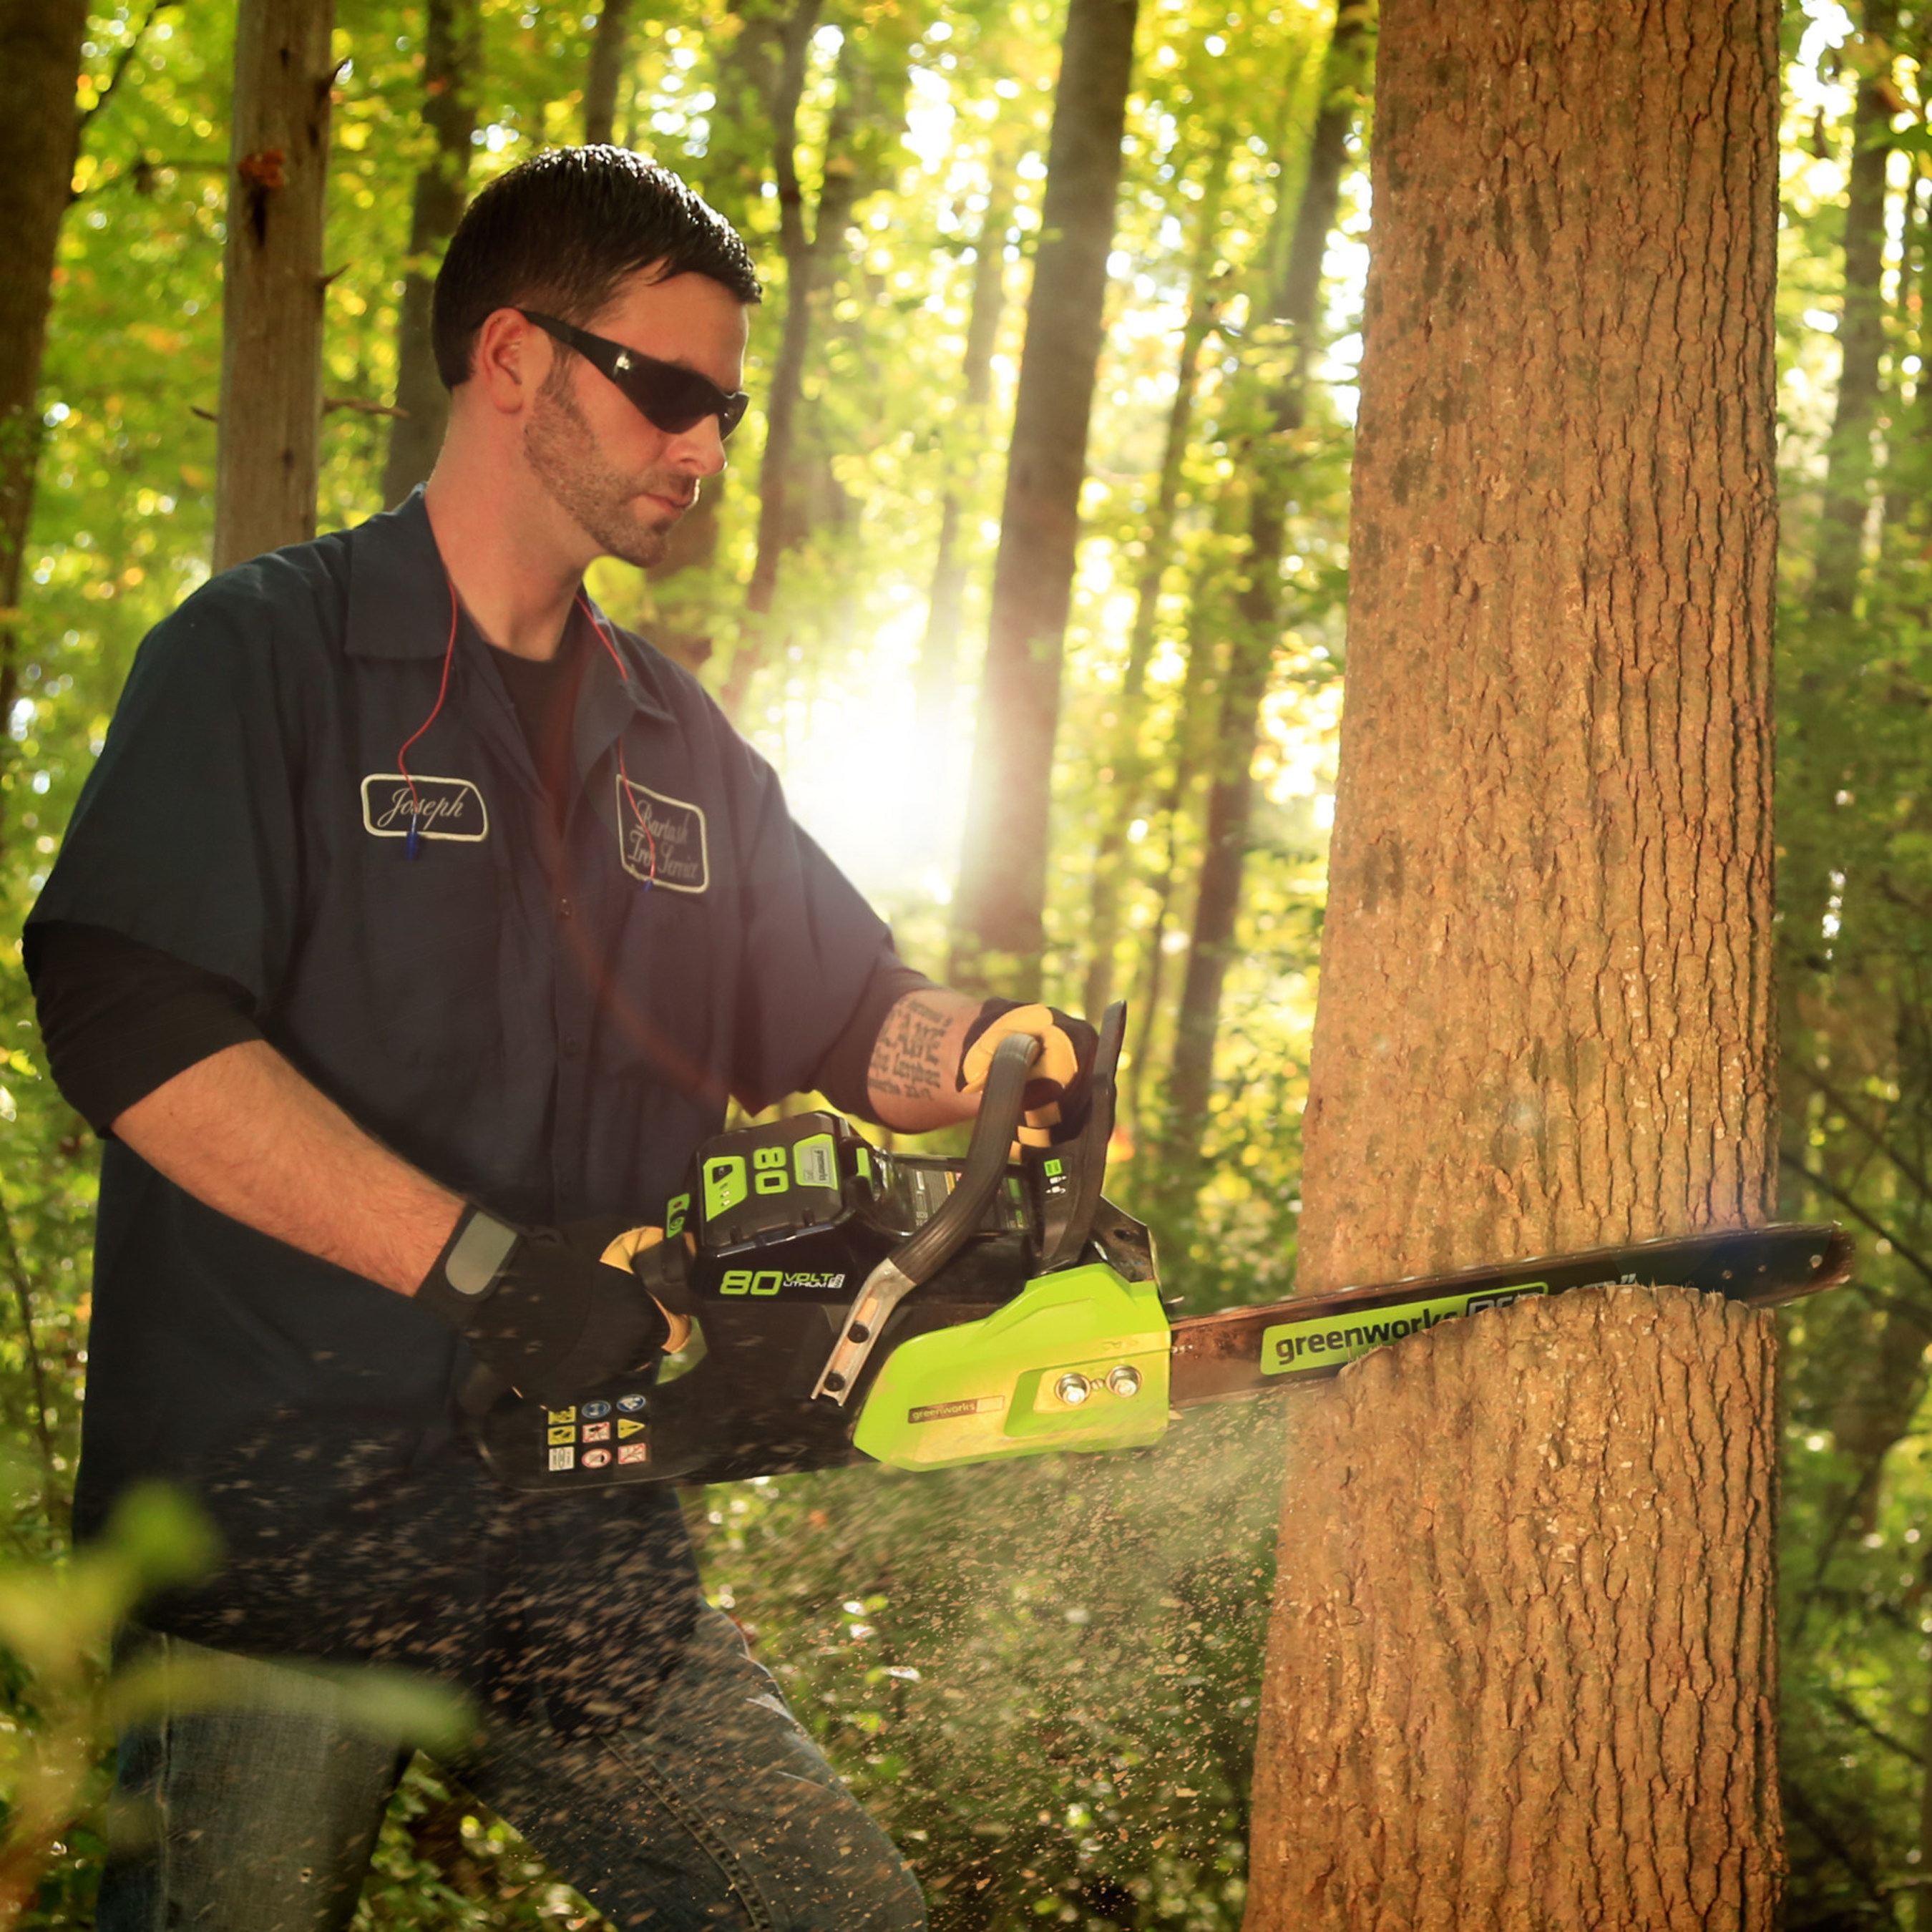 GreenWorks Pro delivers gas-comparable power and performance without the high cost of gas and oil, which means ...